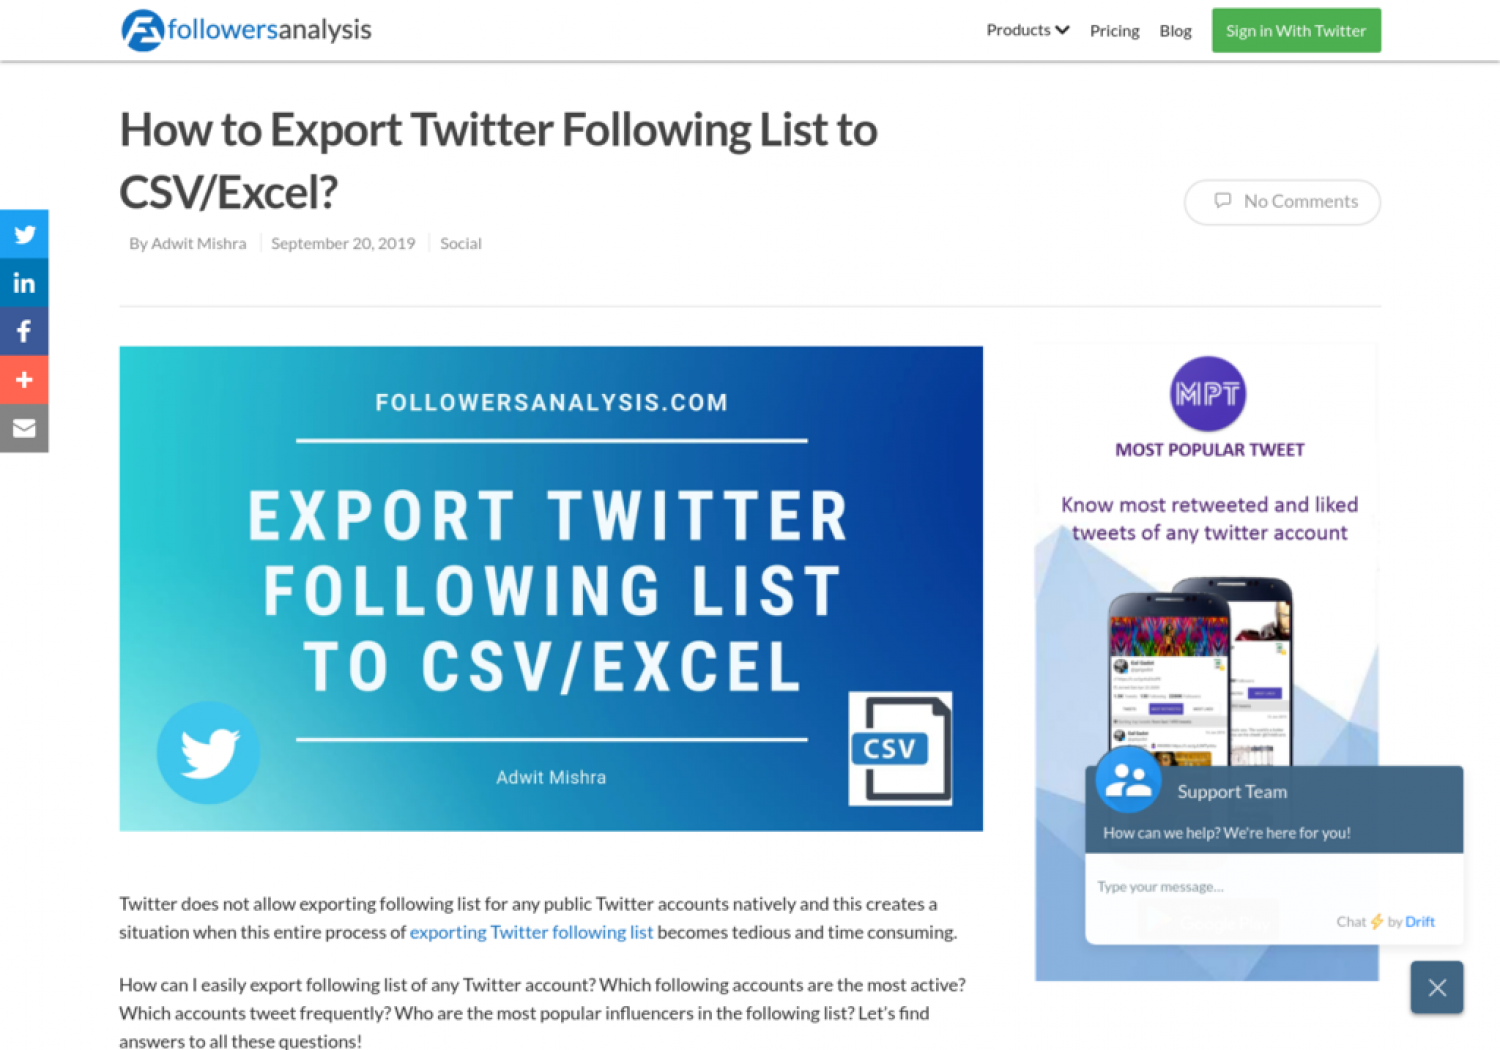 https://www.followersanalysis.com/blog/how-to-export-twitter-following-list-to-csv-excel/ Infographic